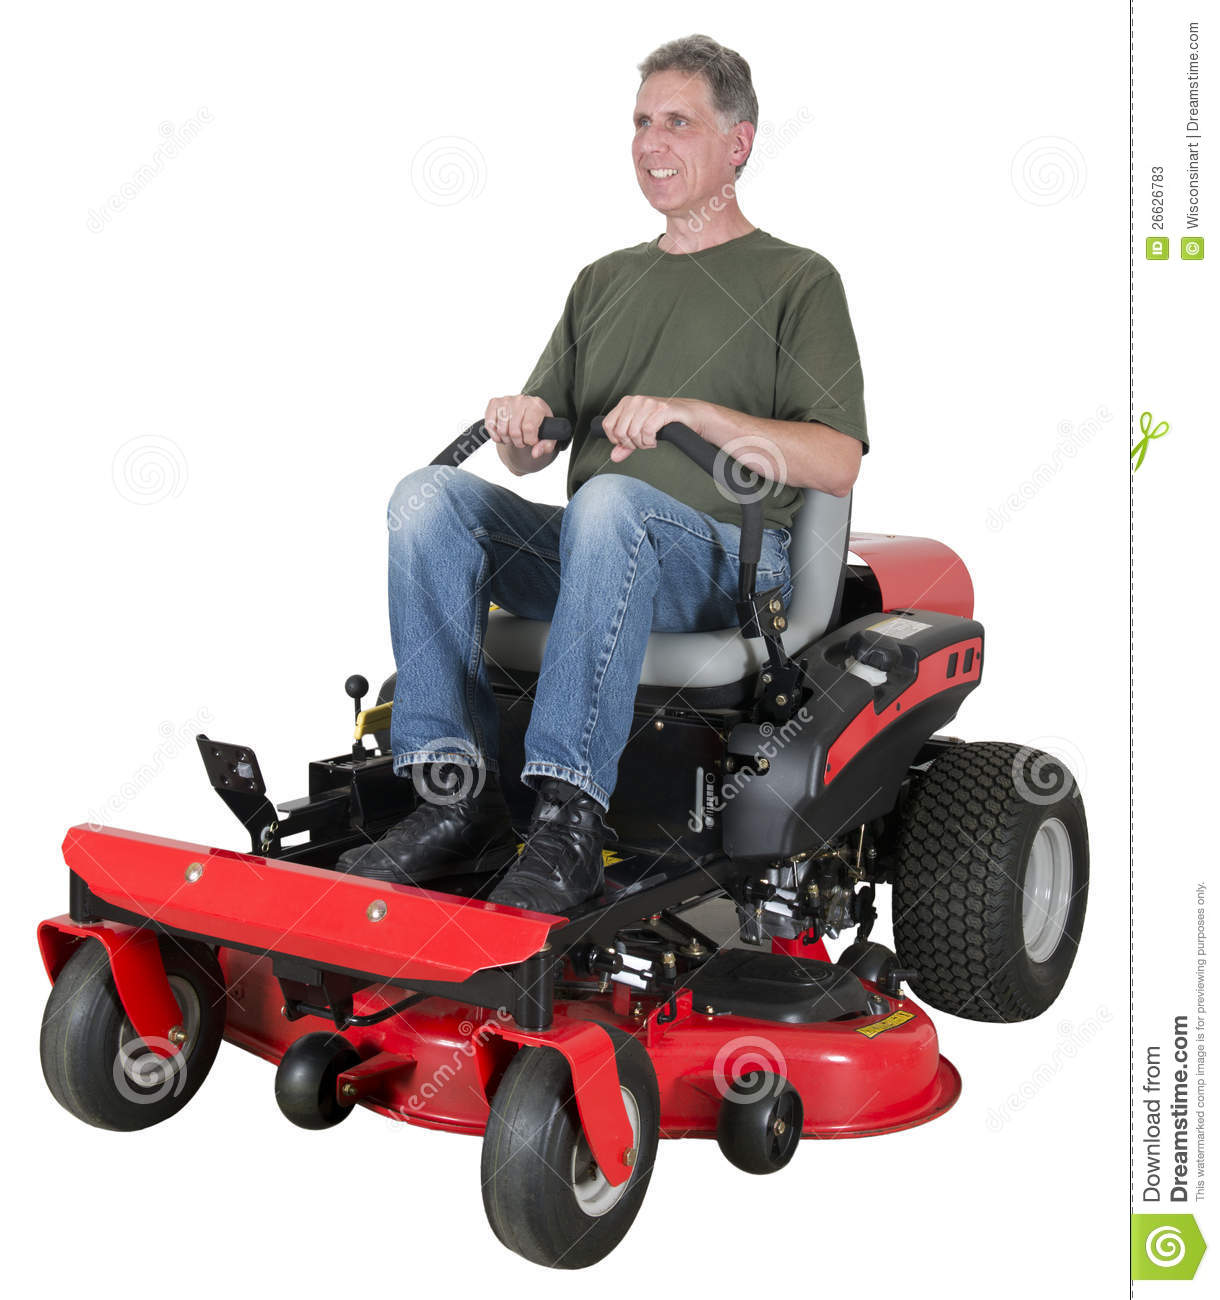 Man Riding Lawn Mower : Man on riding lawn mower clipart suggest